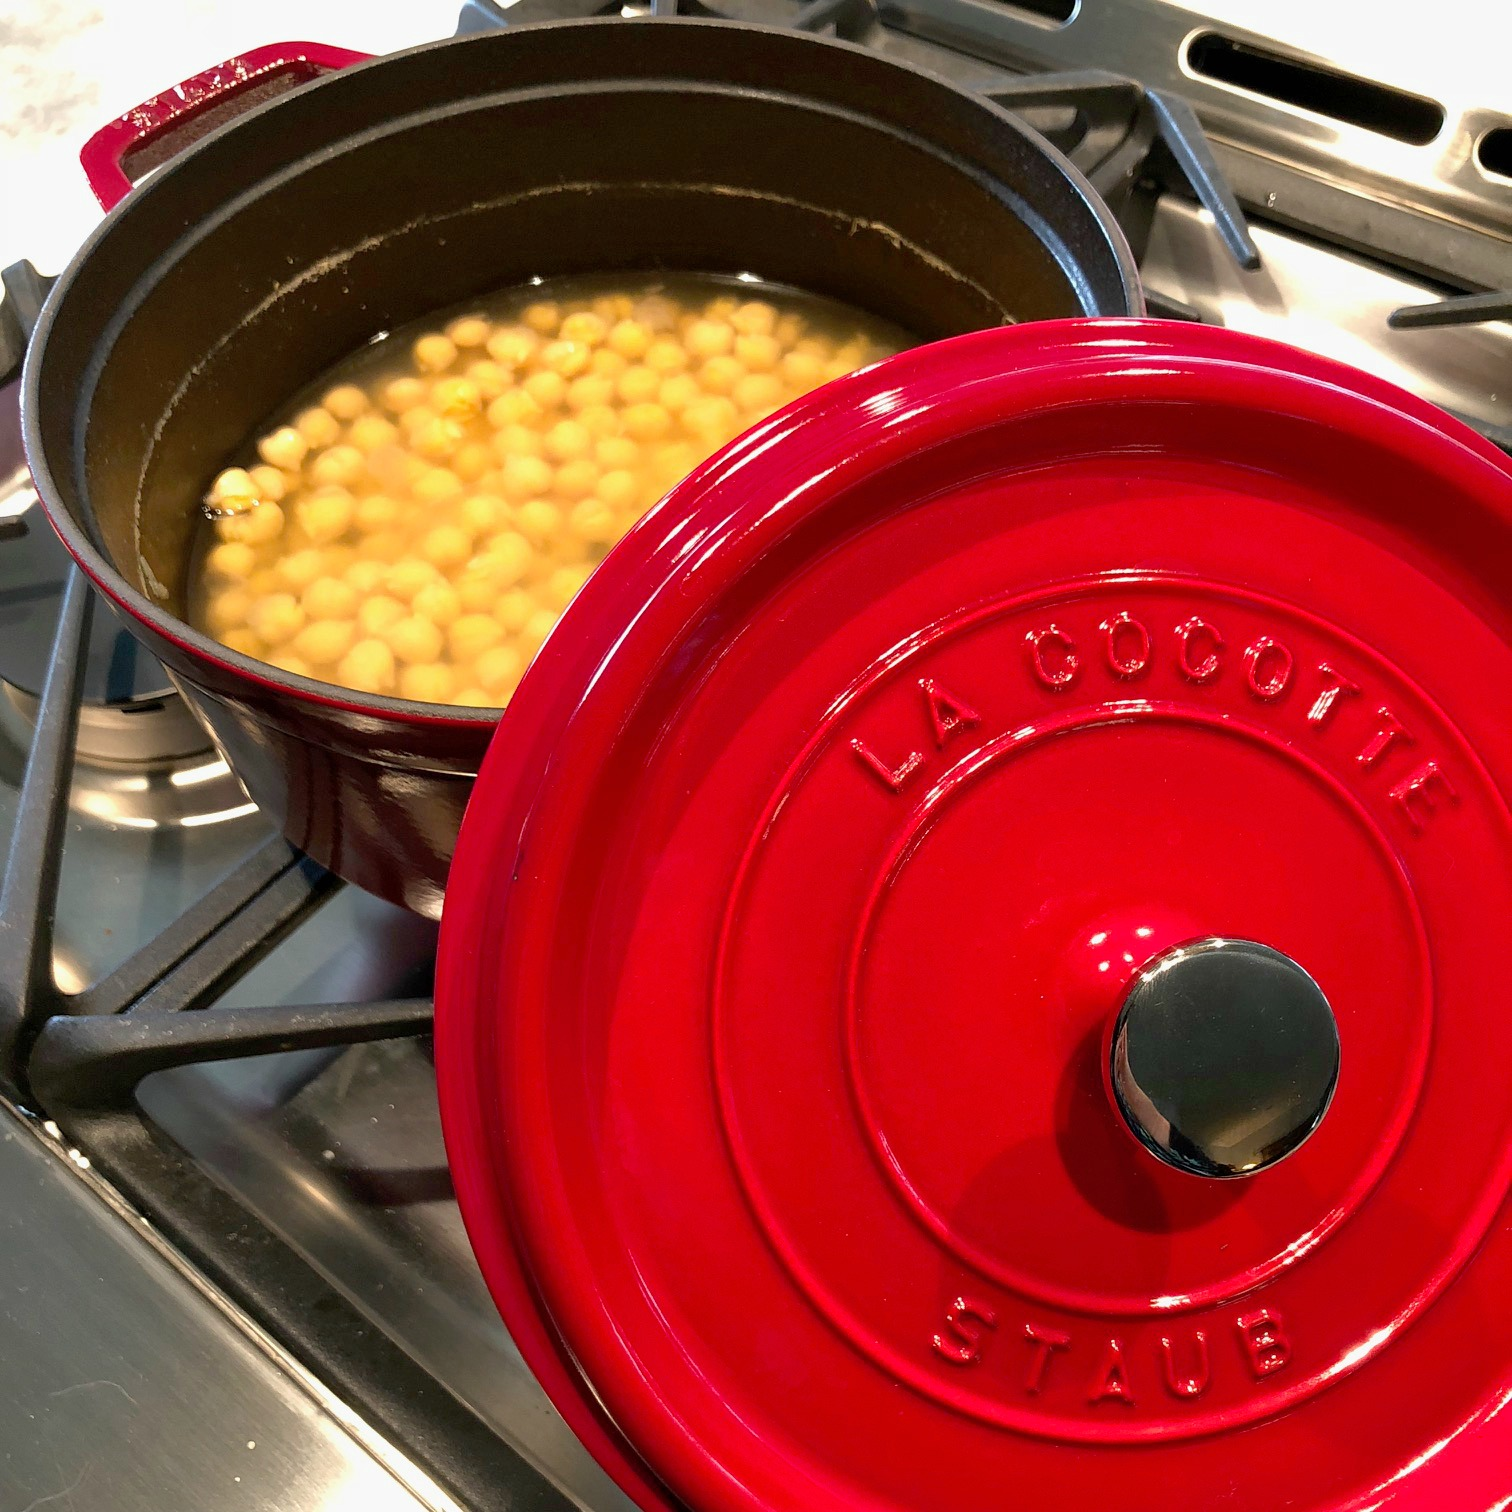 Cooking garbanzo beans in the oven.